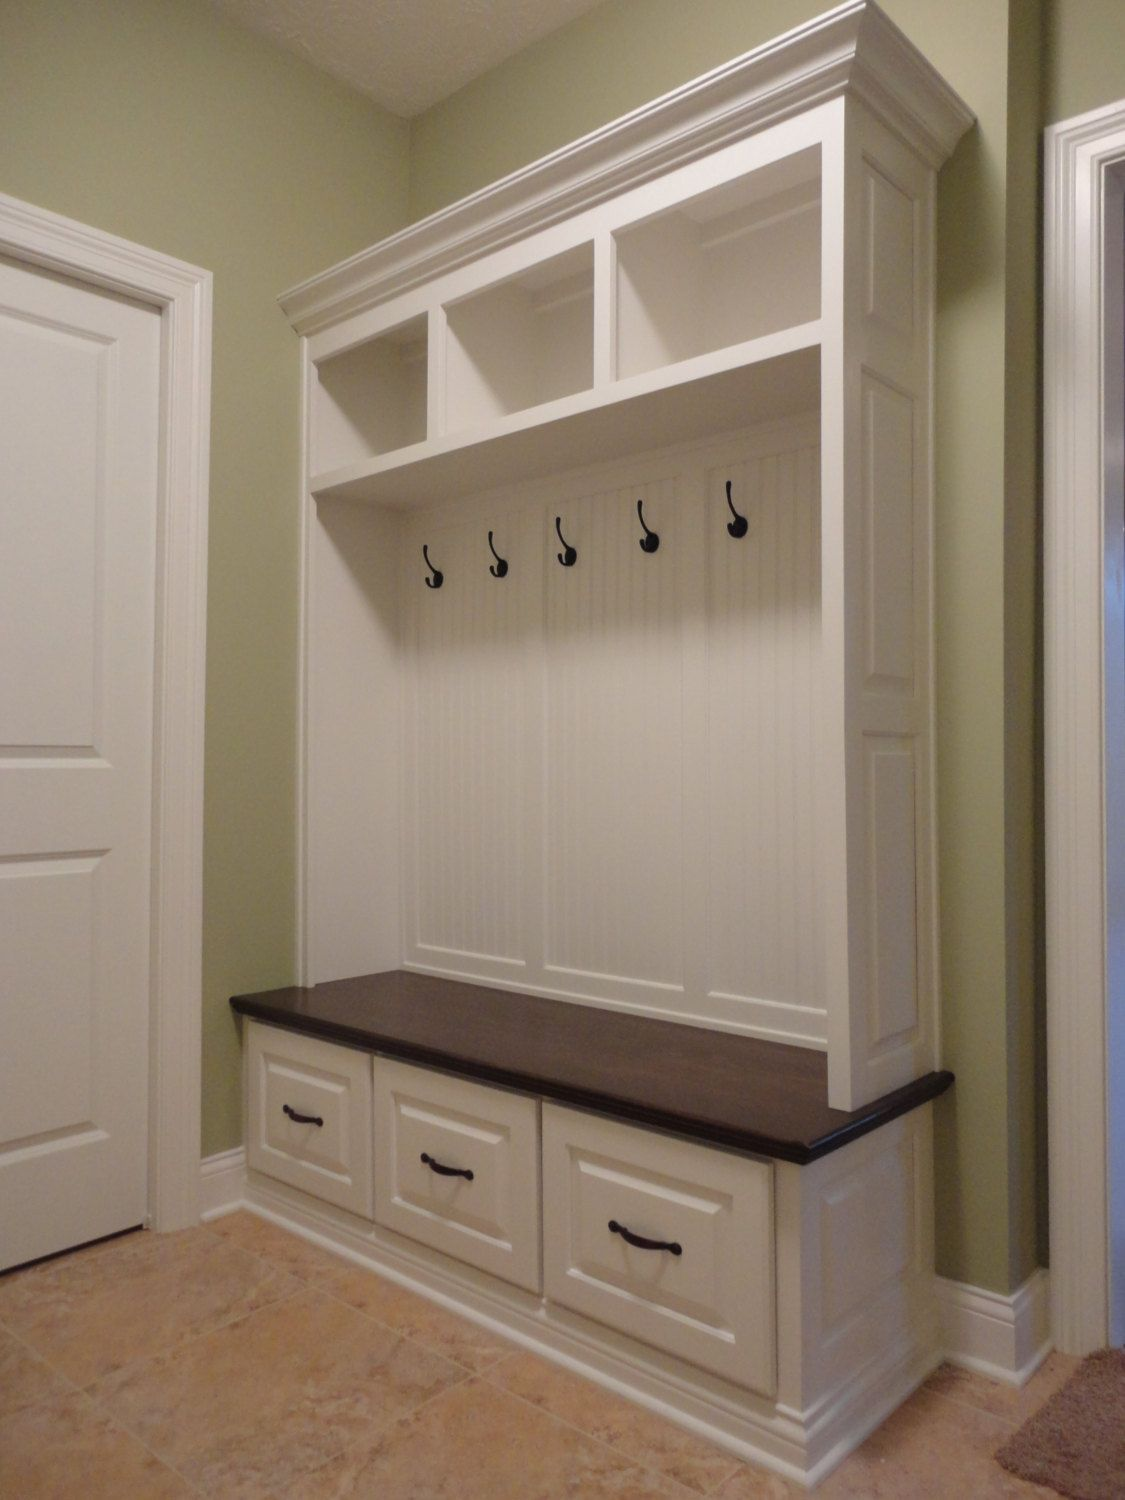 Mudroom Organizers Storage : This is the one for mudroom no drawers on